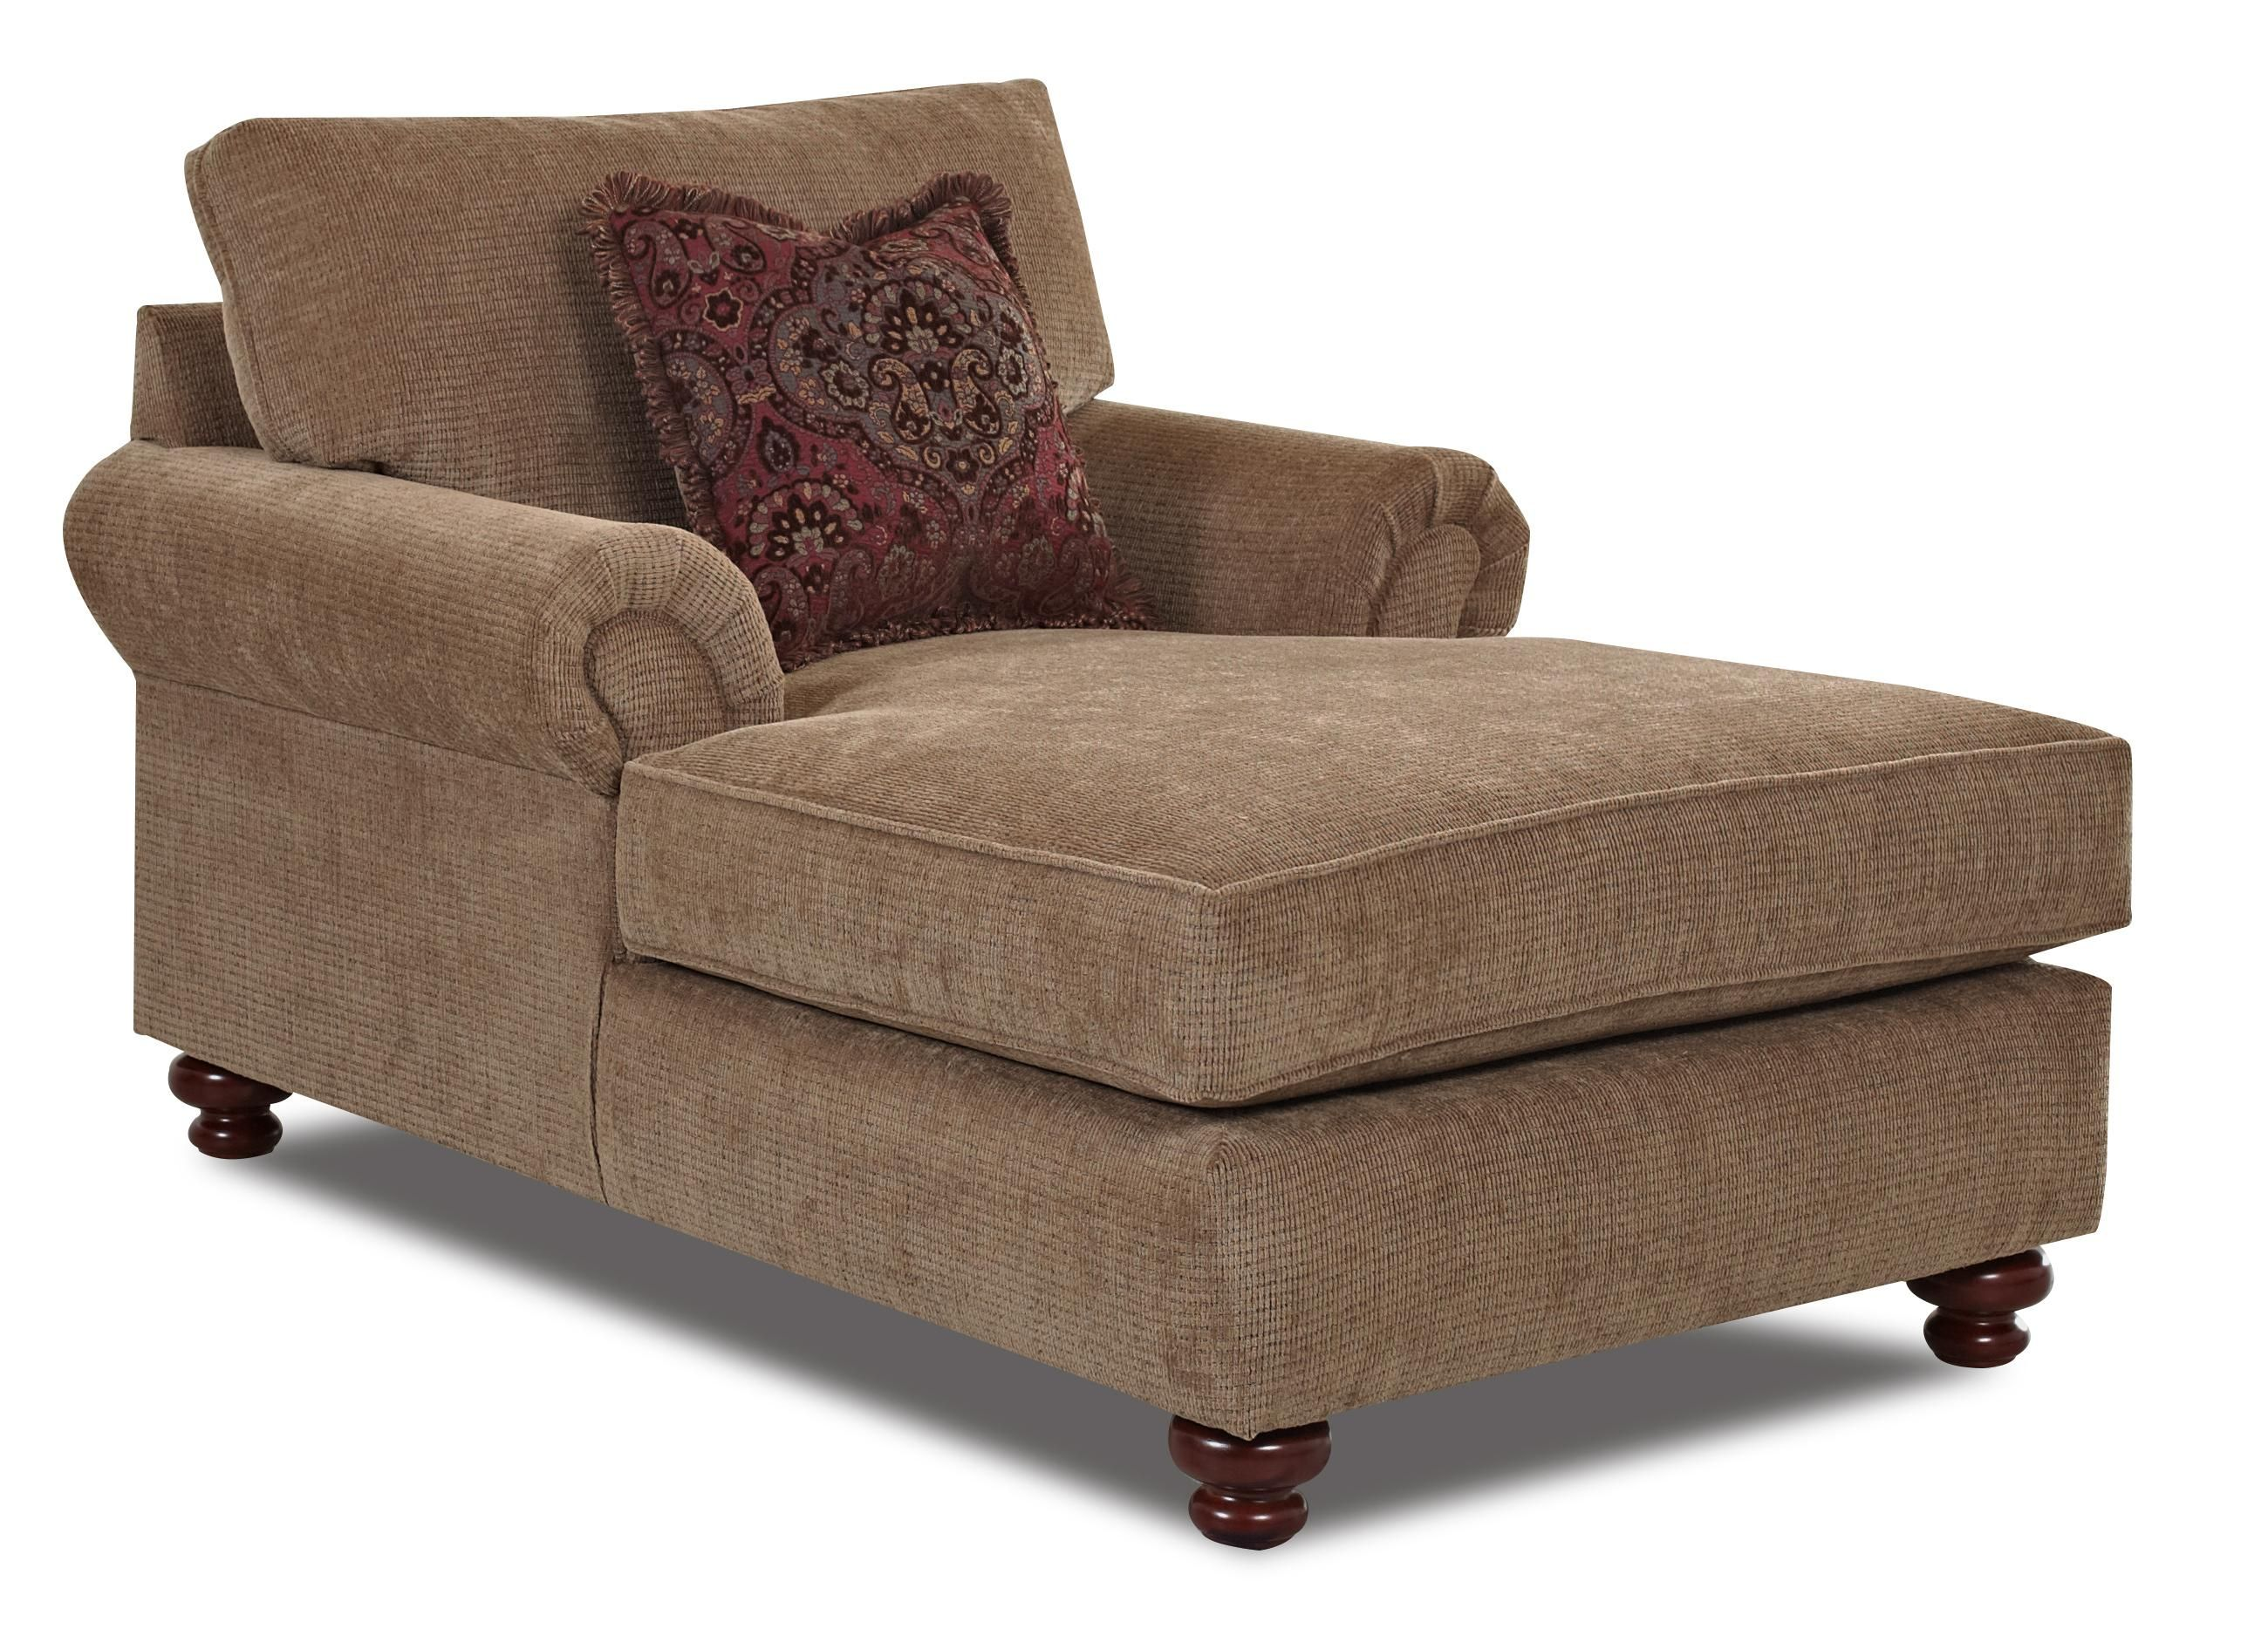 Greenvale Traditional Chaise Lounge By Klaussner Wolf Furniture